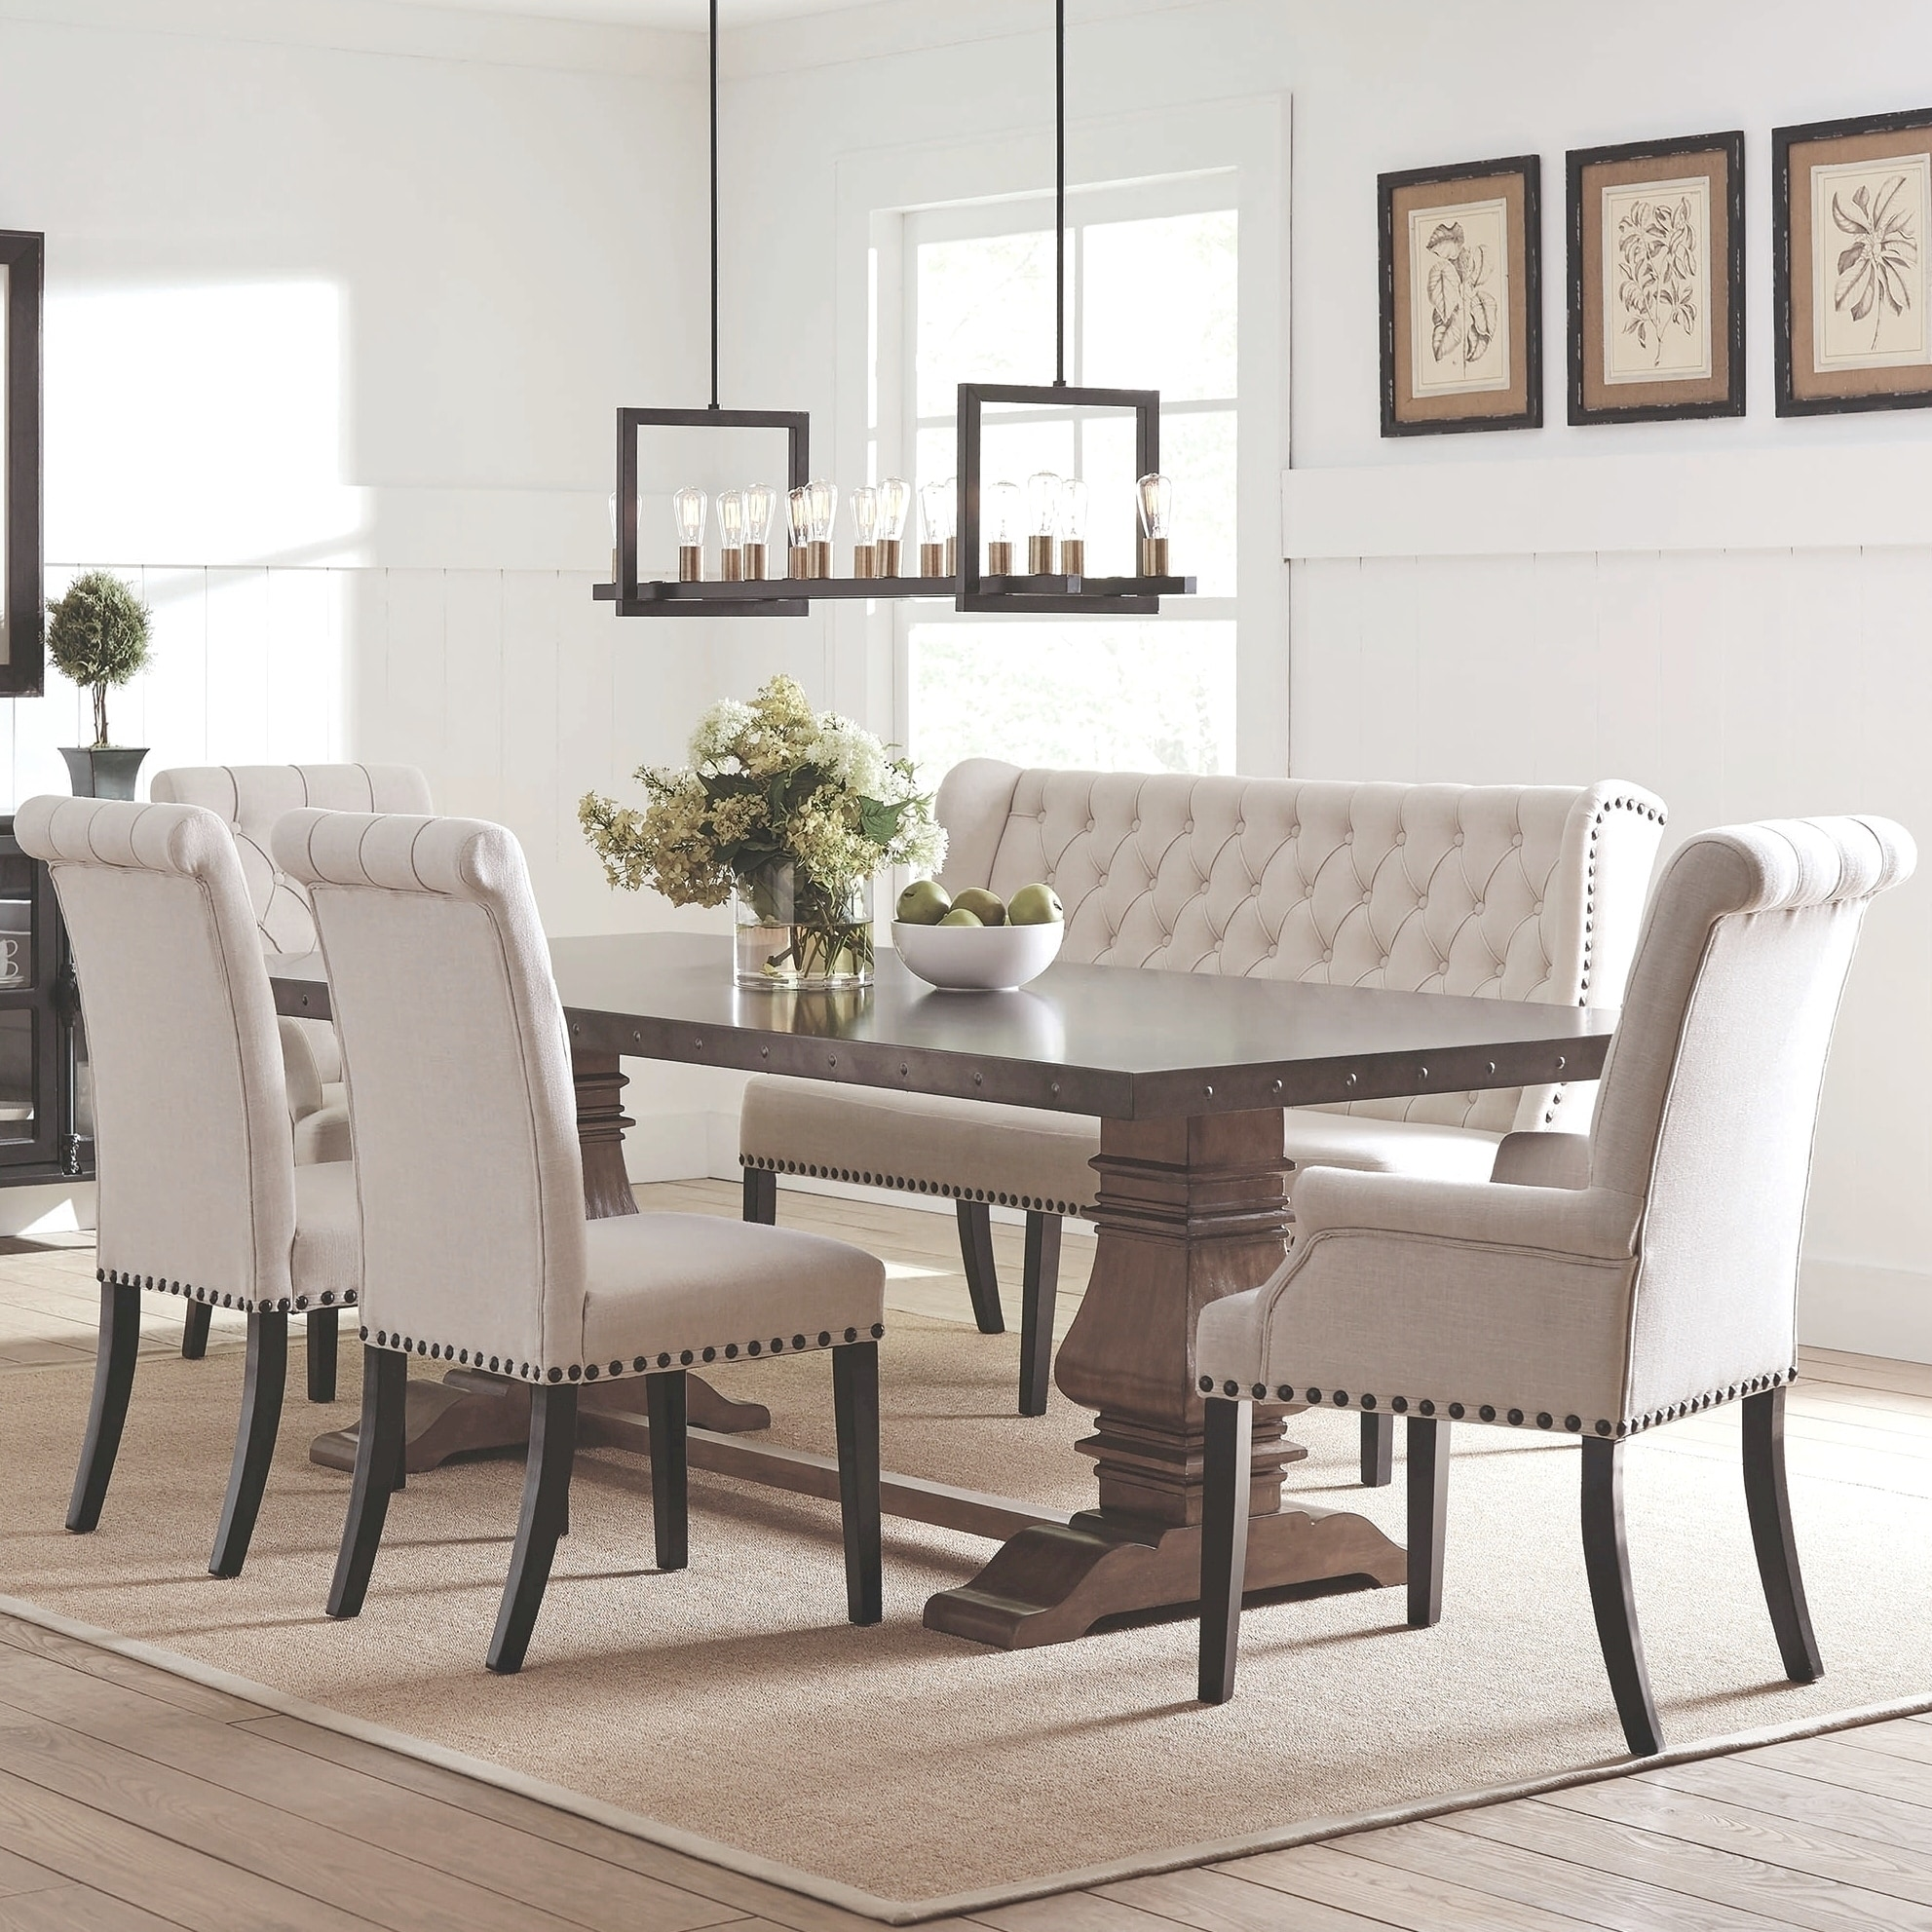 French Baroque Designe Dining Set With Rolled Button Tufted Chairs And Bench Overstock 28756806